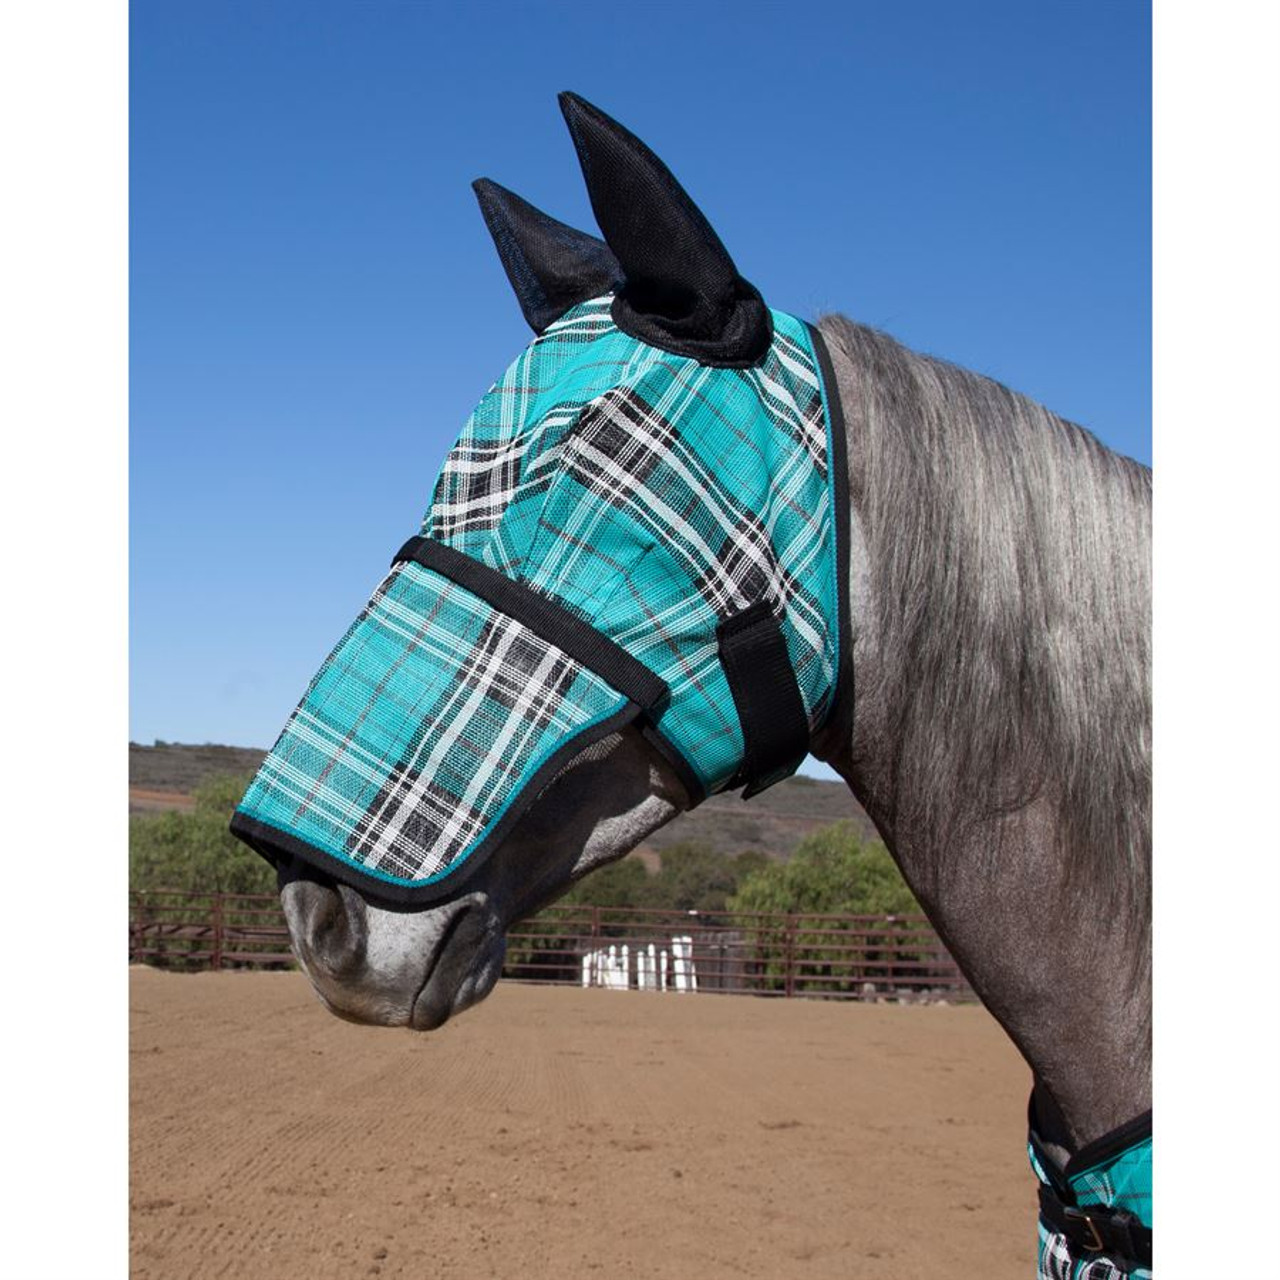 Kensington Fly Mask W Ears And Removable Nose Black Ice Do Trot In Tack Shop